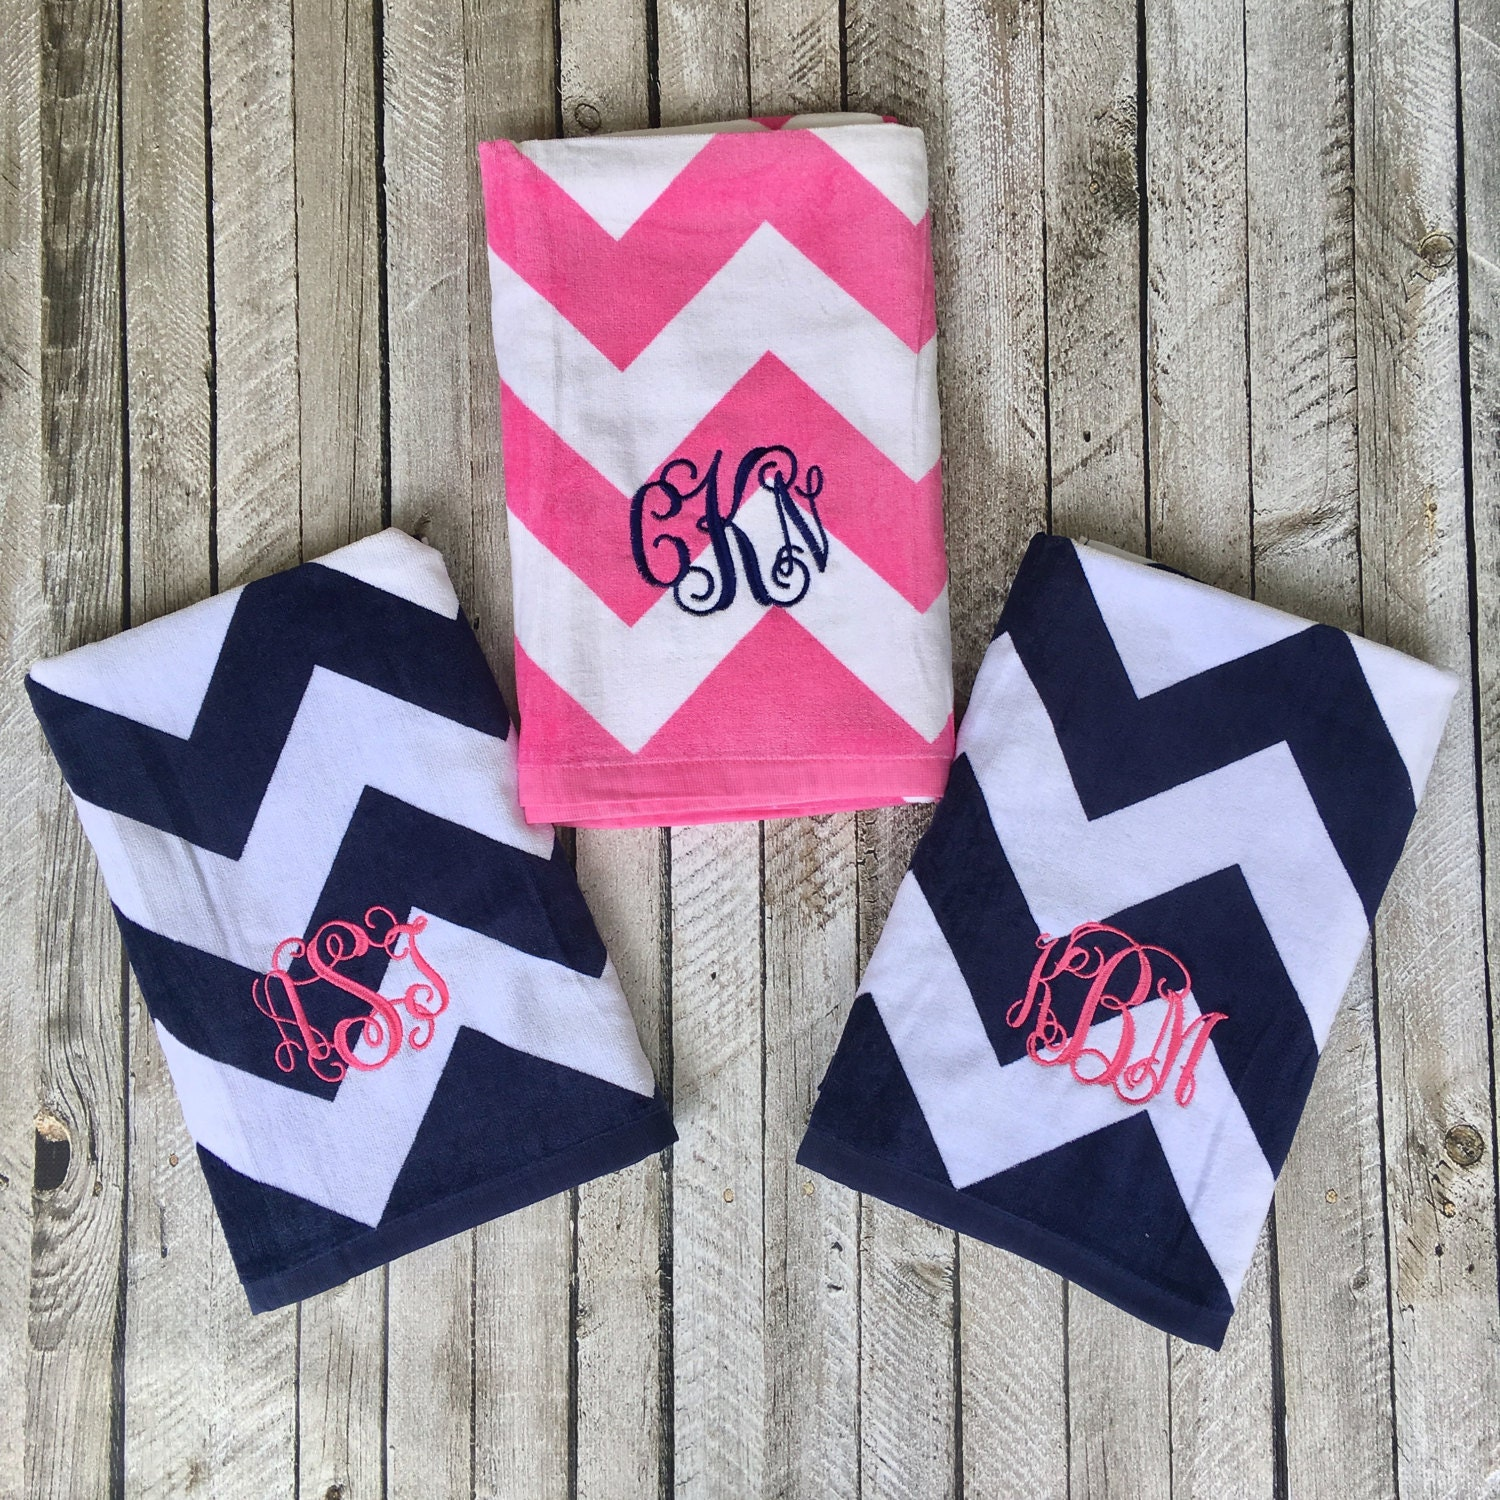 Monogrammed Beach Towels Monogrammed Gifts Bridesmaid Gifts